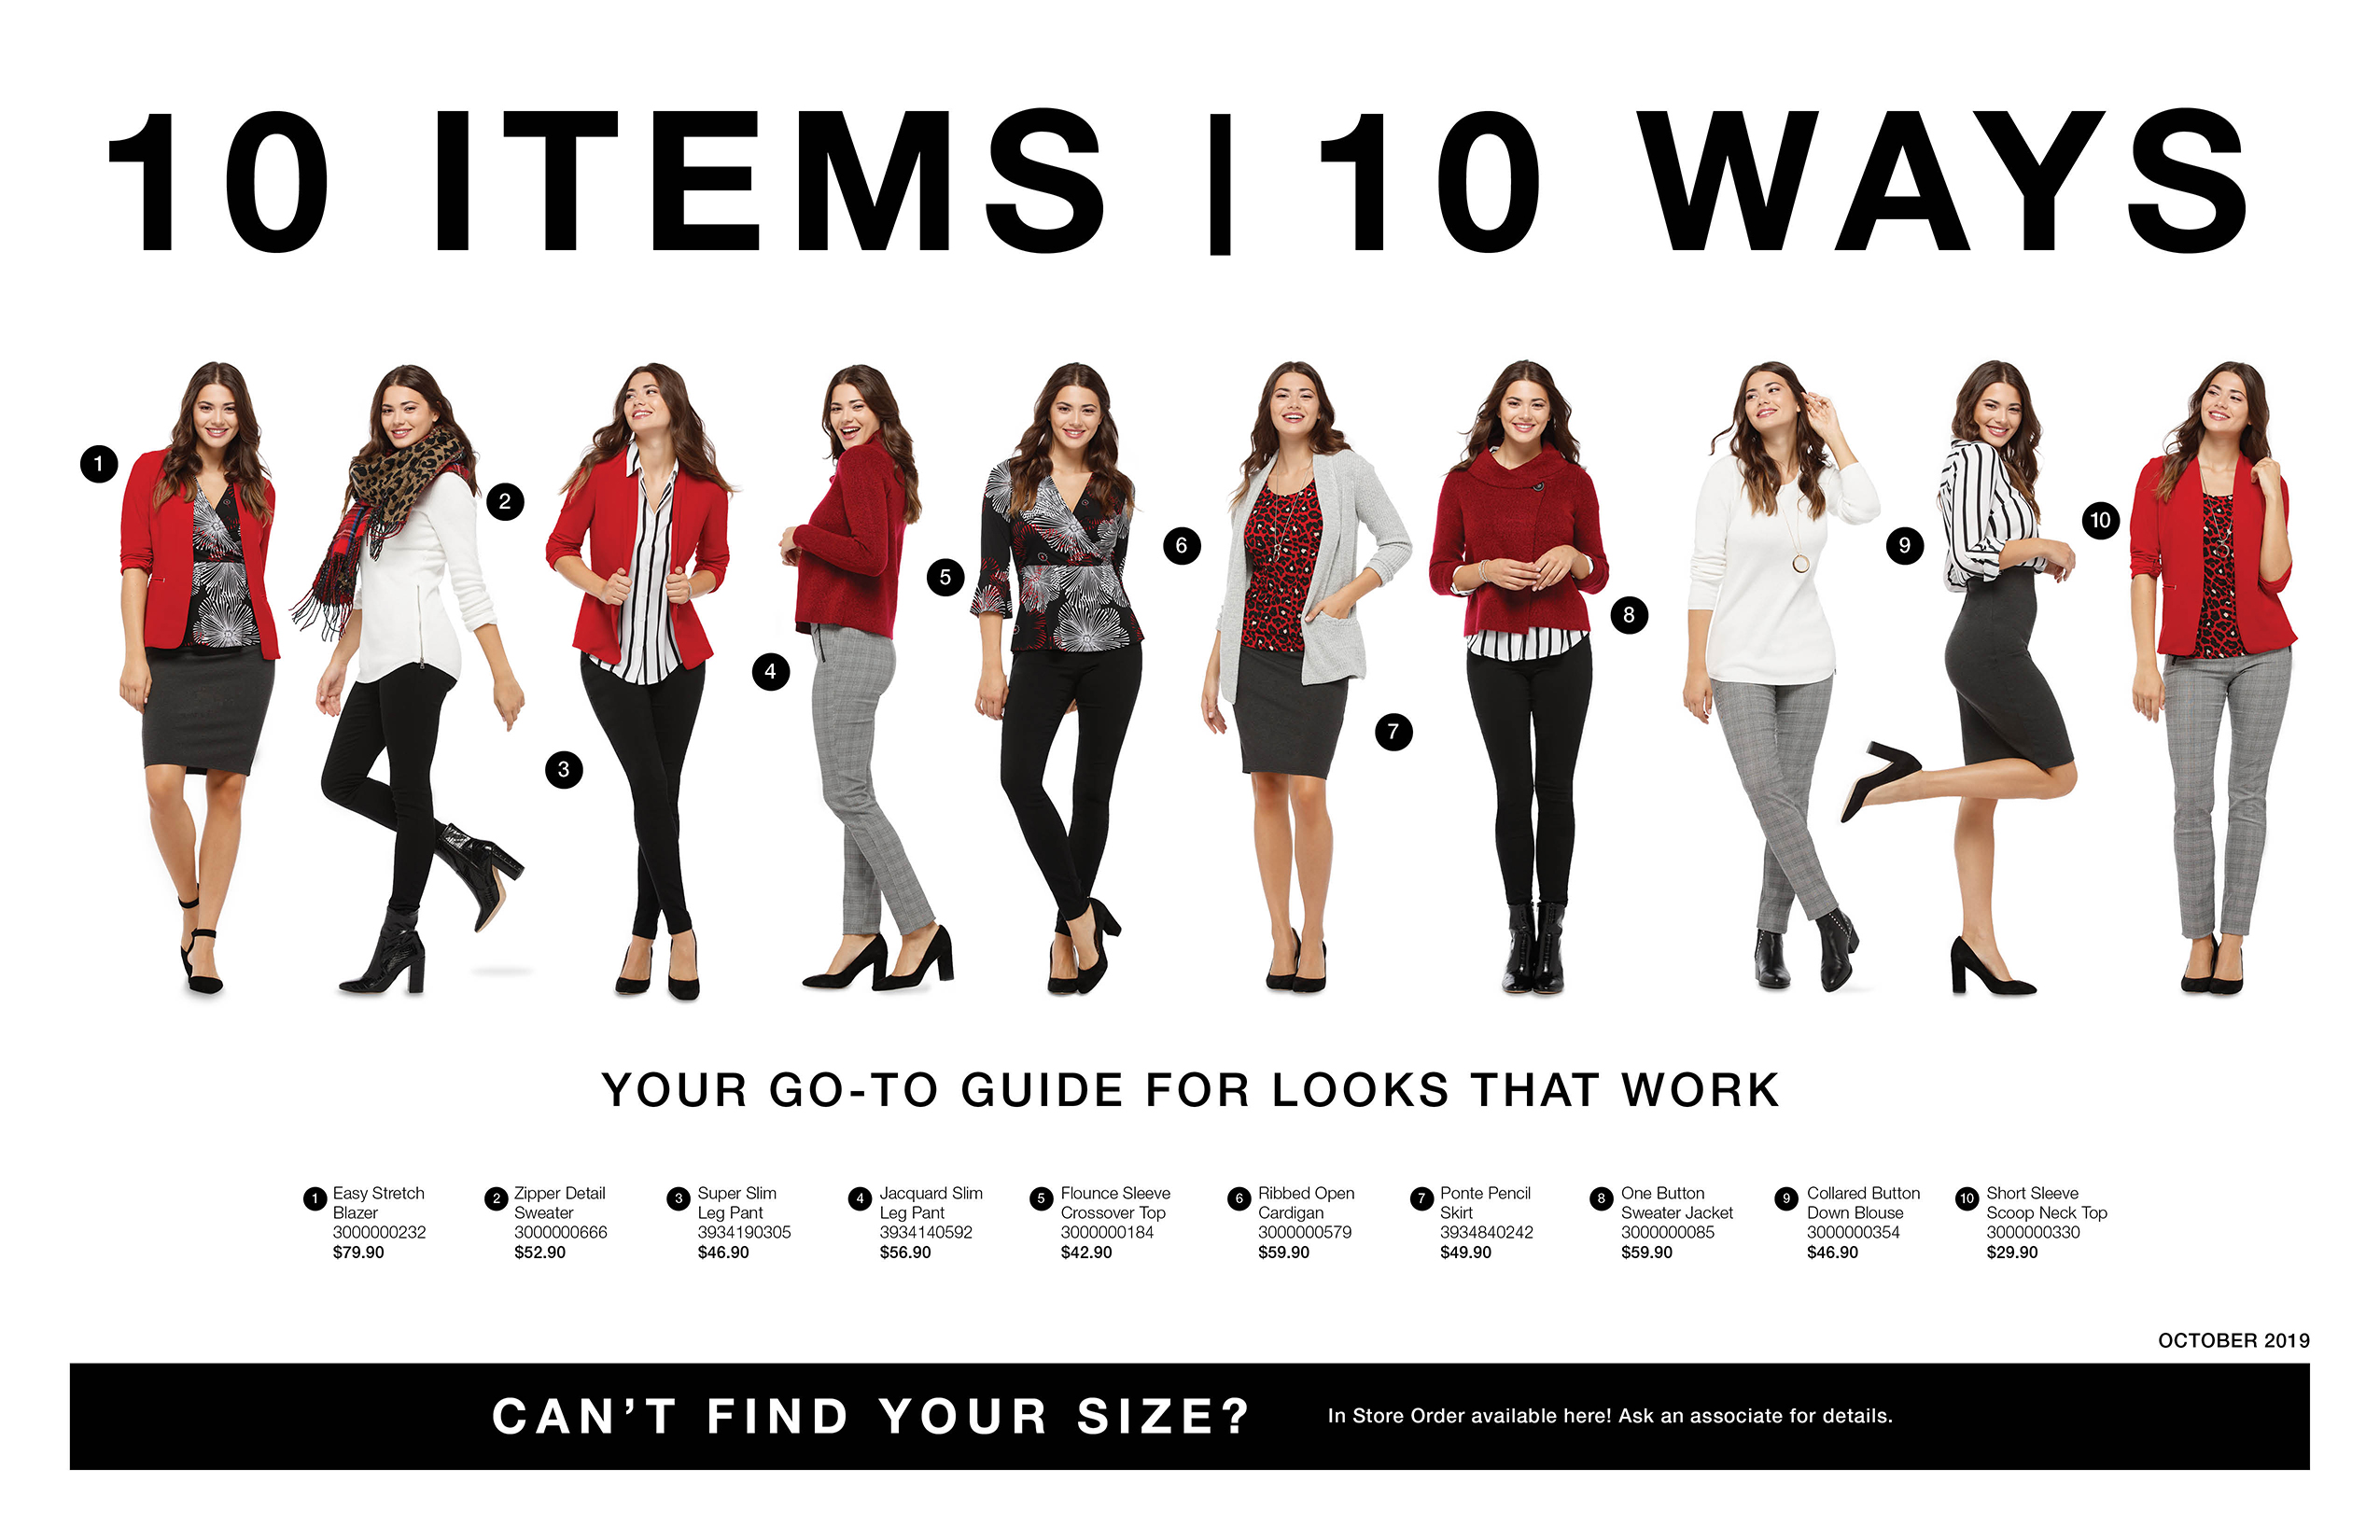 Download 10 items 10 ways